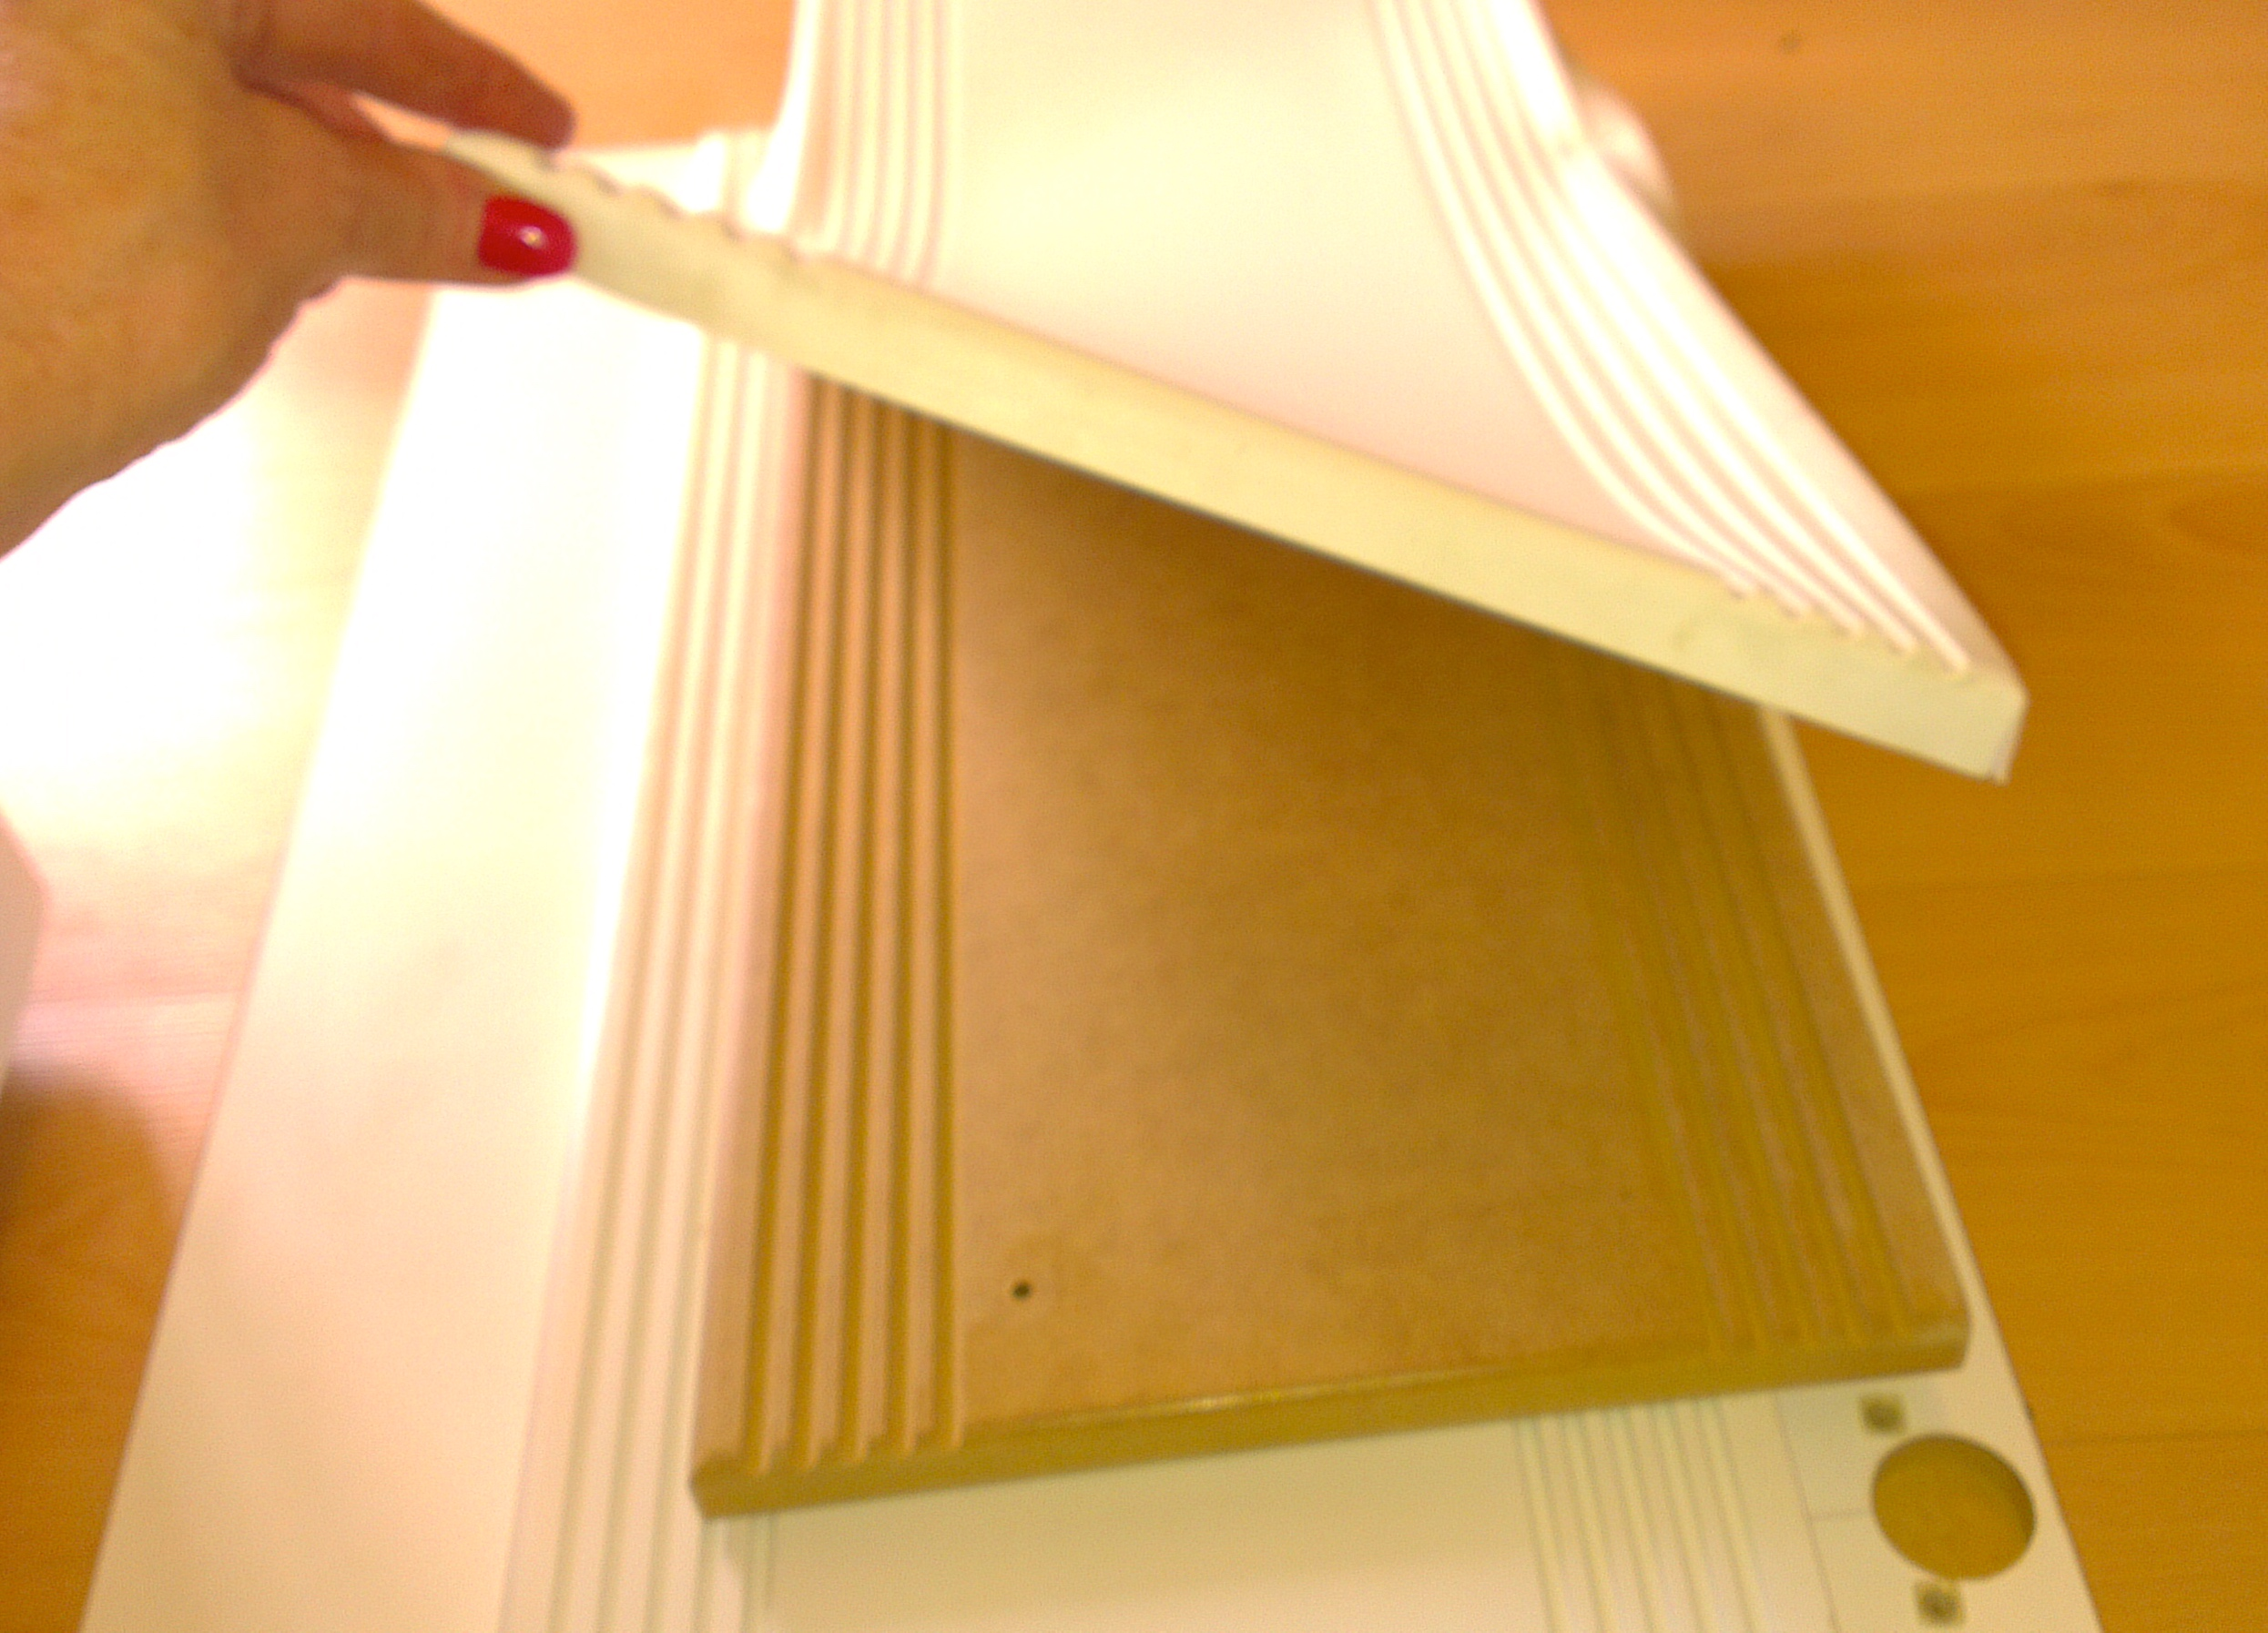 Dianella Polishing re-finishing your peeling vinyl doors with a modern paint that lasts.